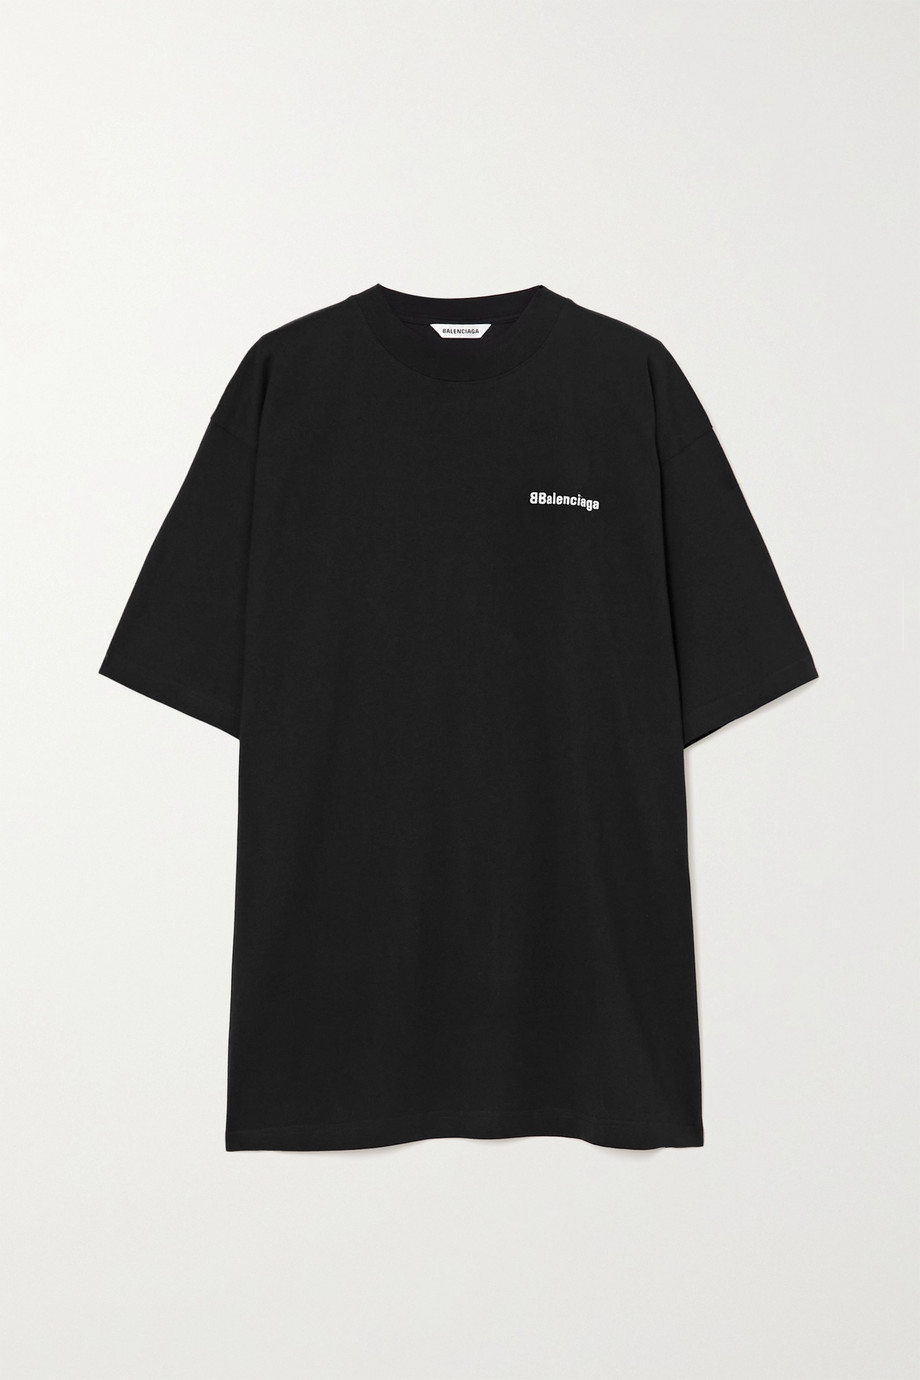 Balenciaga Oversized embroidered cotton-jersey T-shirt